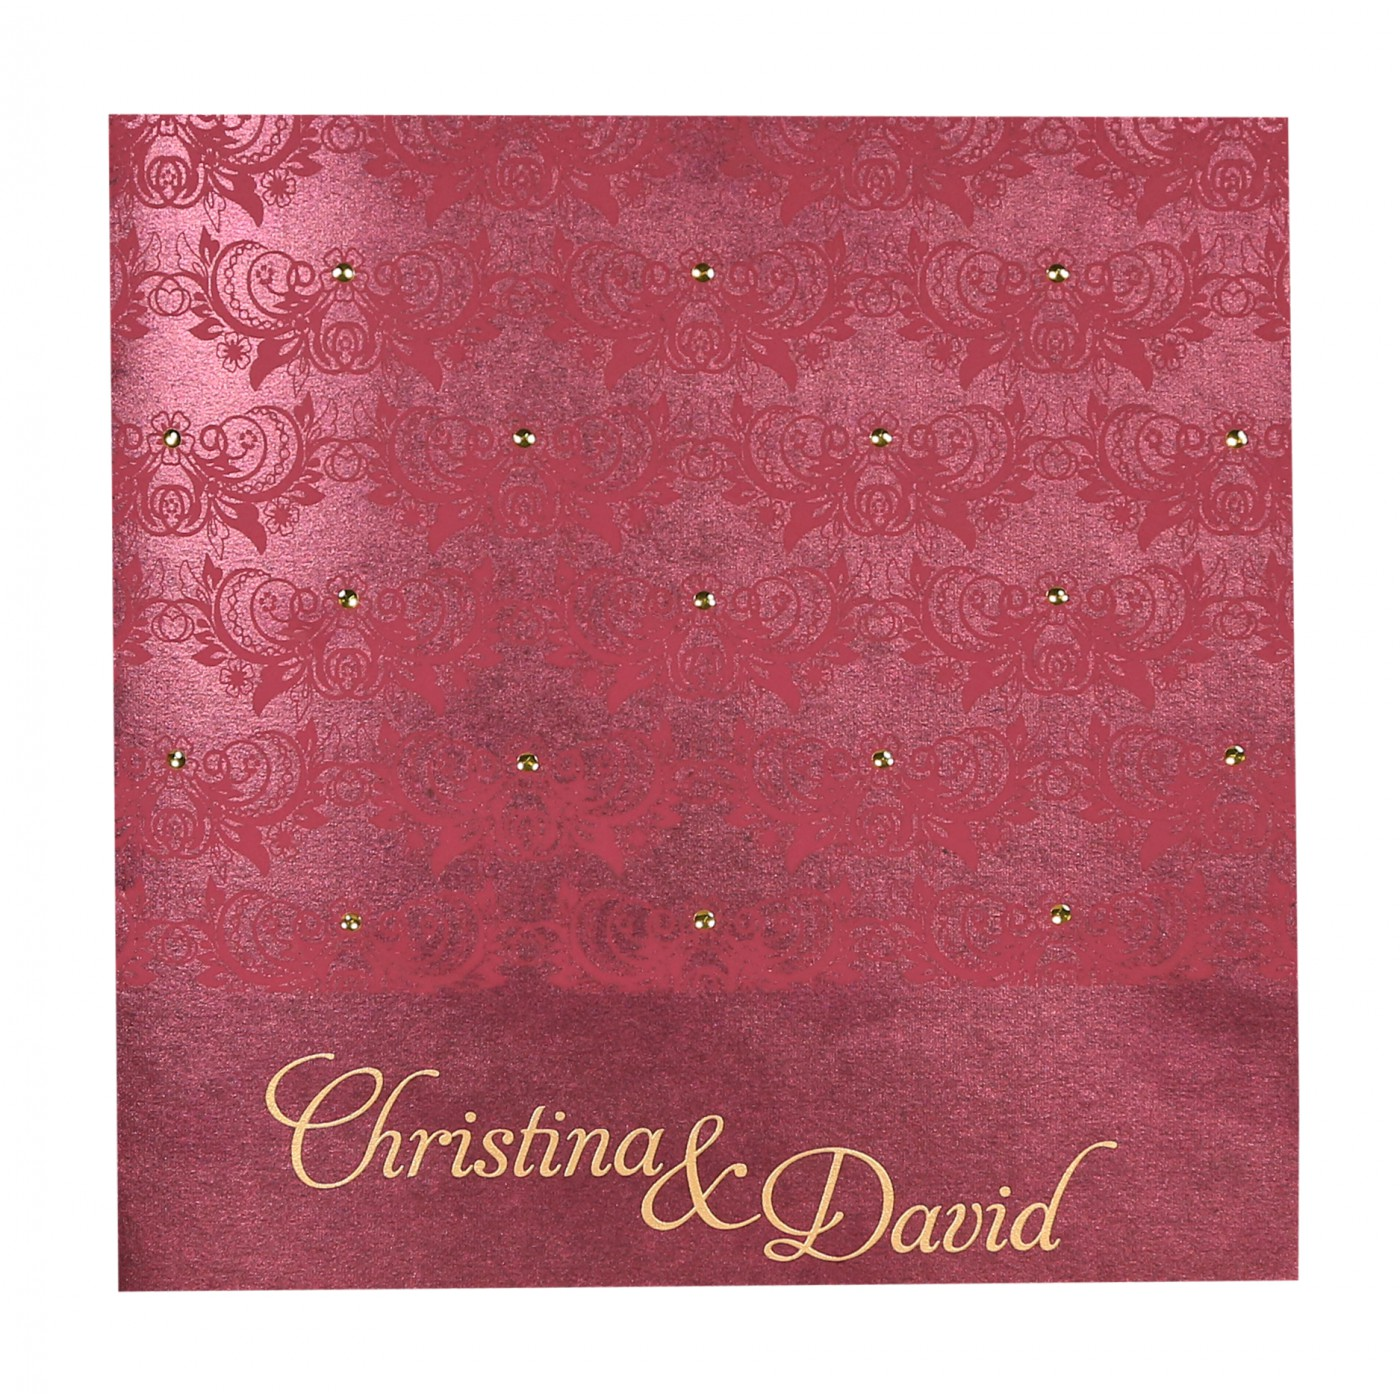 DARK RED SHIMMERY BUTTERFLY THEMED - SCREEN PRINTED WEDDING CARD : D ...